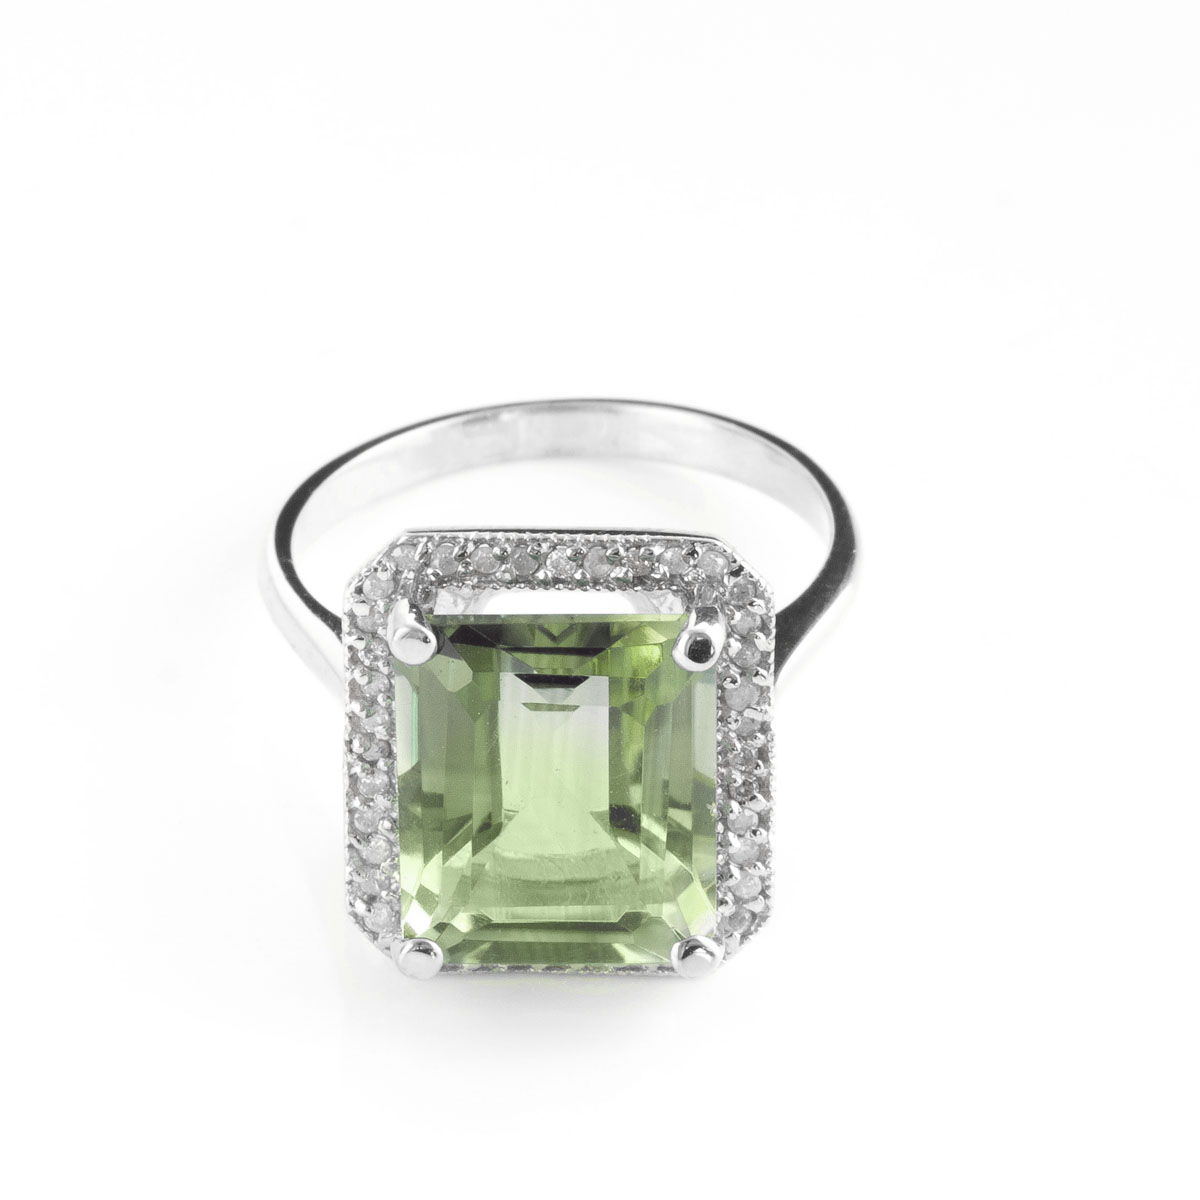 Green Amethyst Halo Ring 5.8 ctw in 18ct White Gold